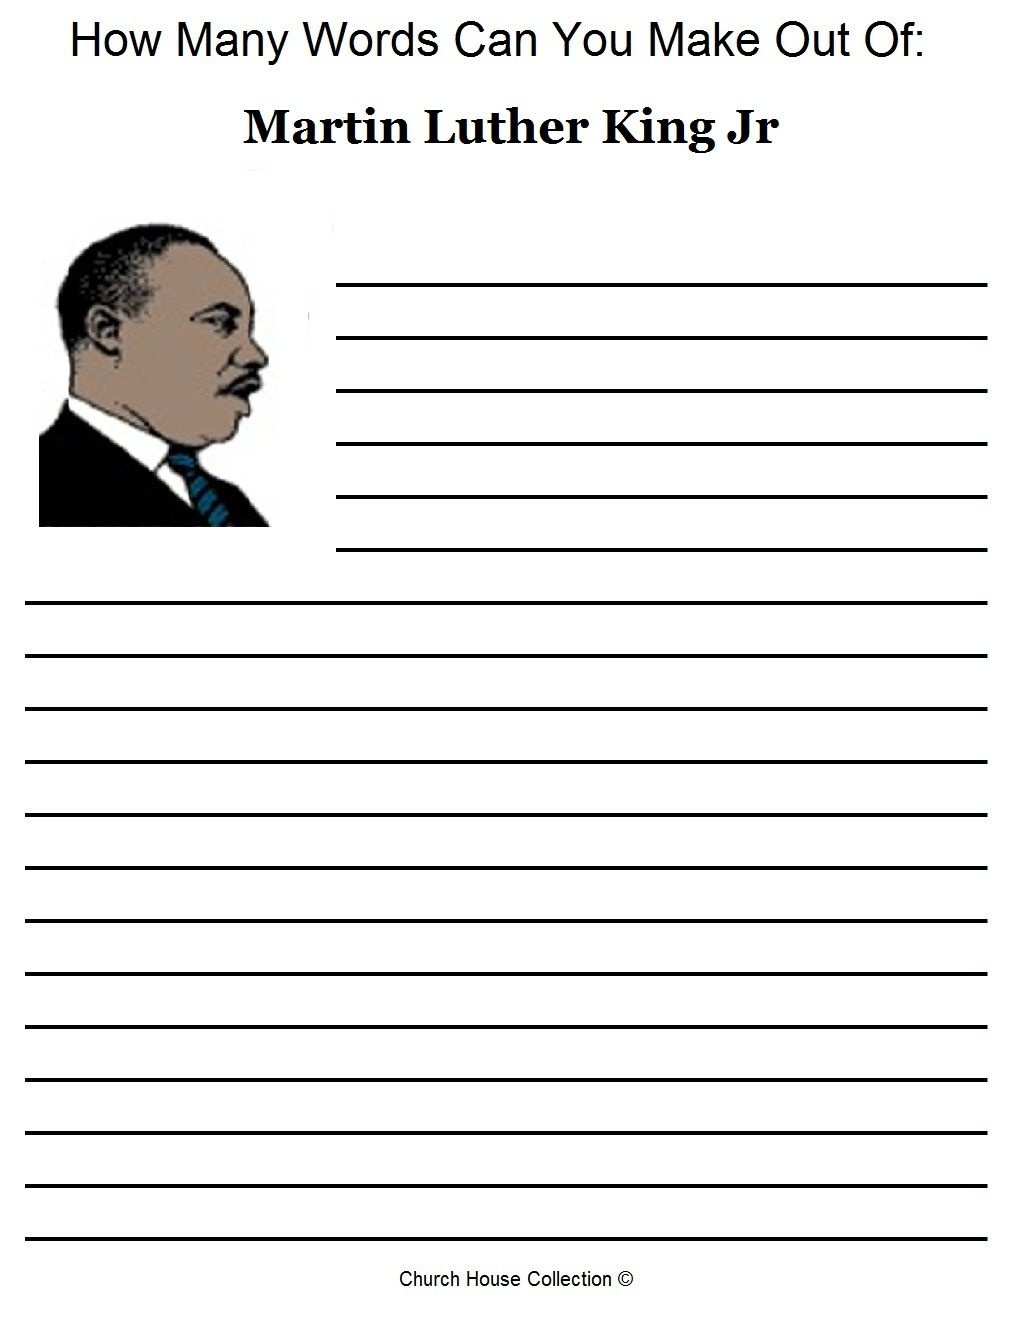 Free Martin Luther King Jr Worksheets- How Many Words Can You Make - Free Printable Martin Luther King Jr Worksheets